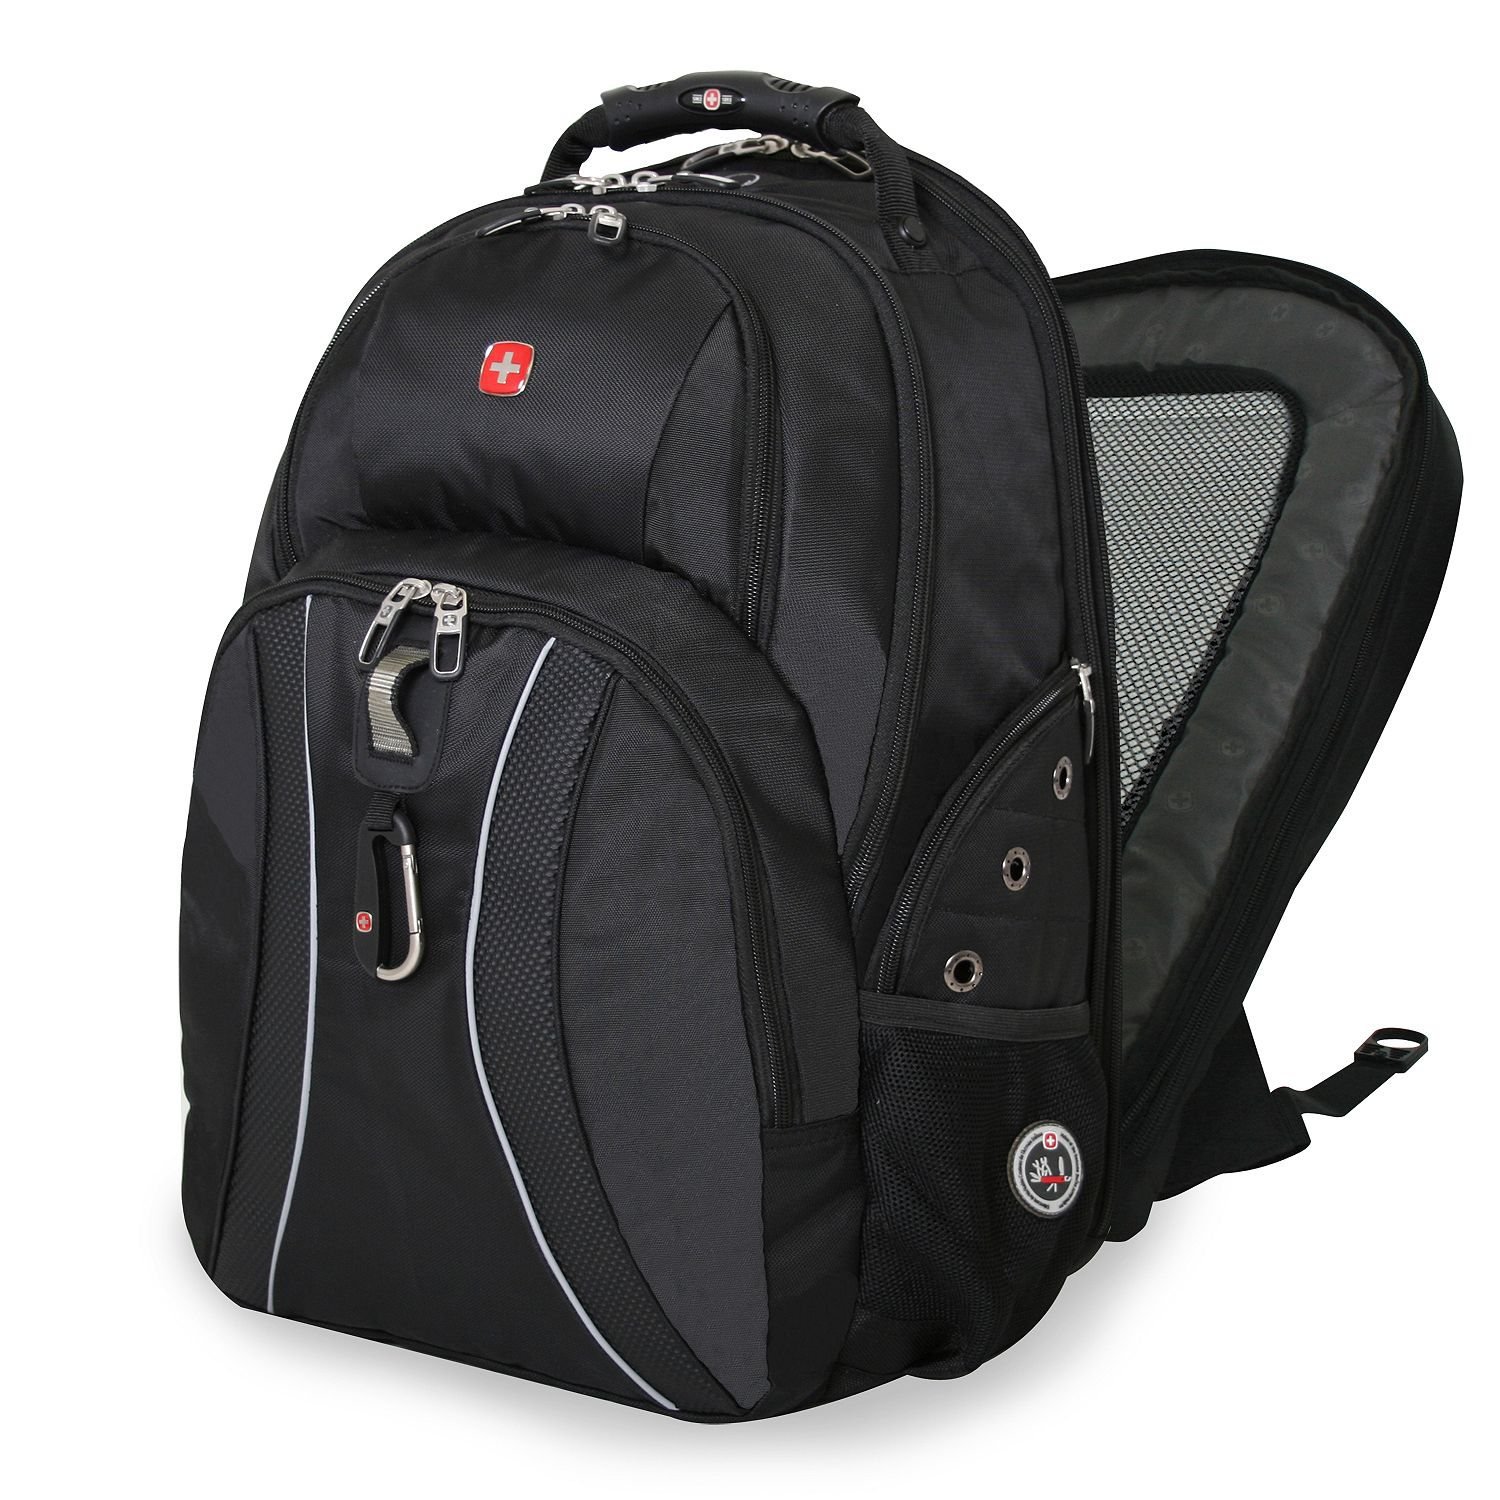 Swiss Gear Backpack Headphone Jack - Crazy Backpacks